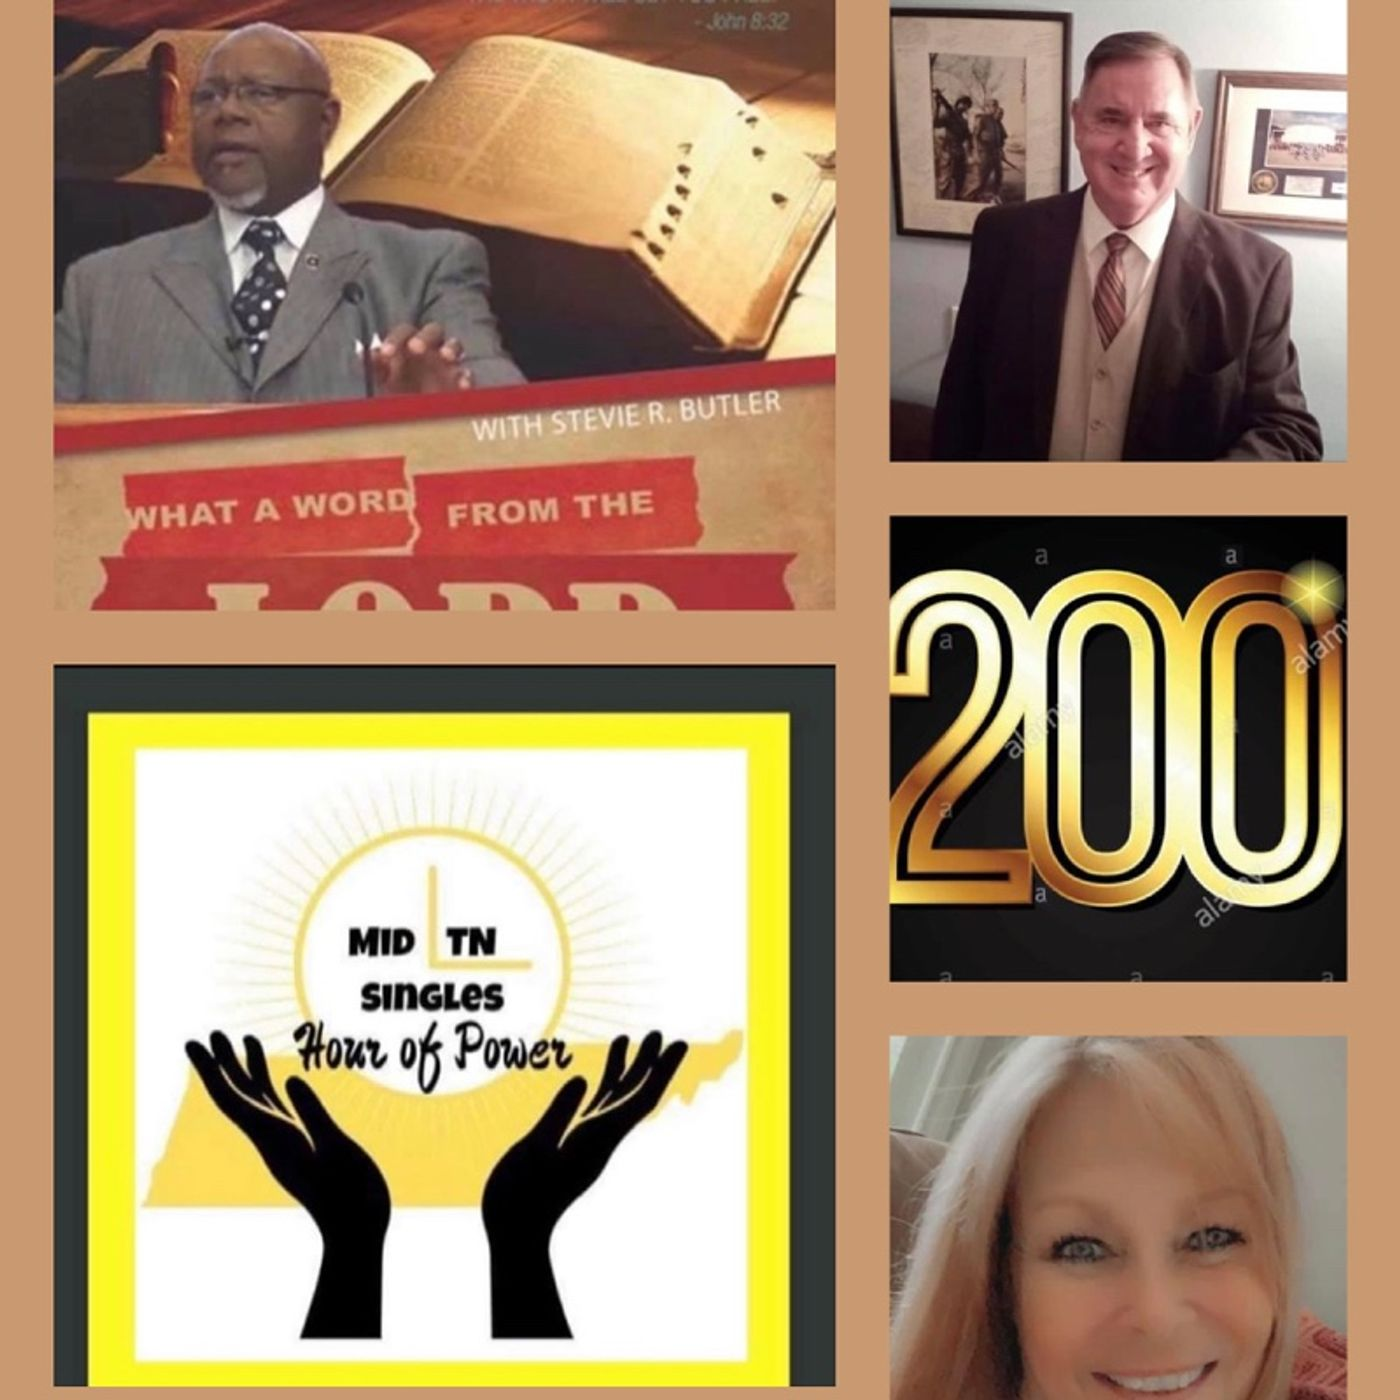 What A Word From The Lord Radio Show - (Episode 200)